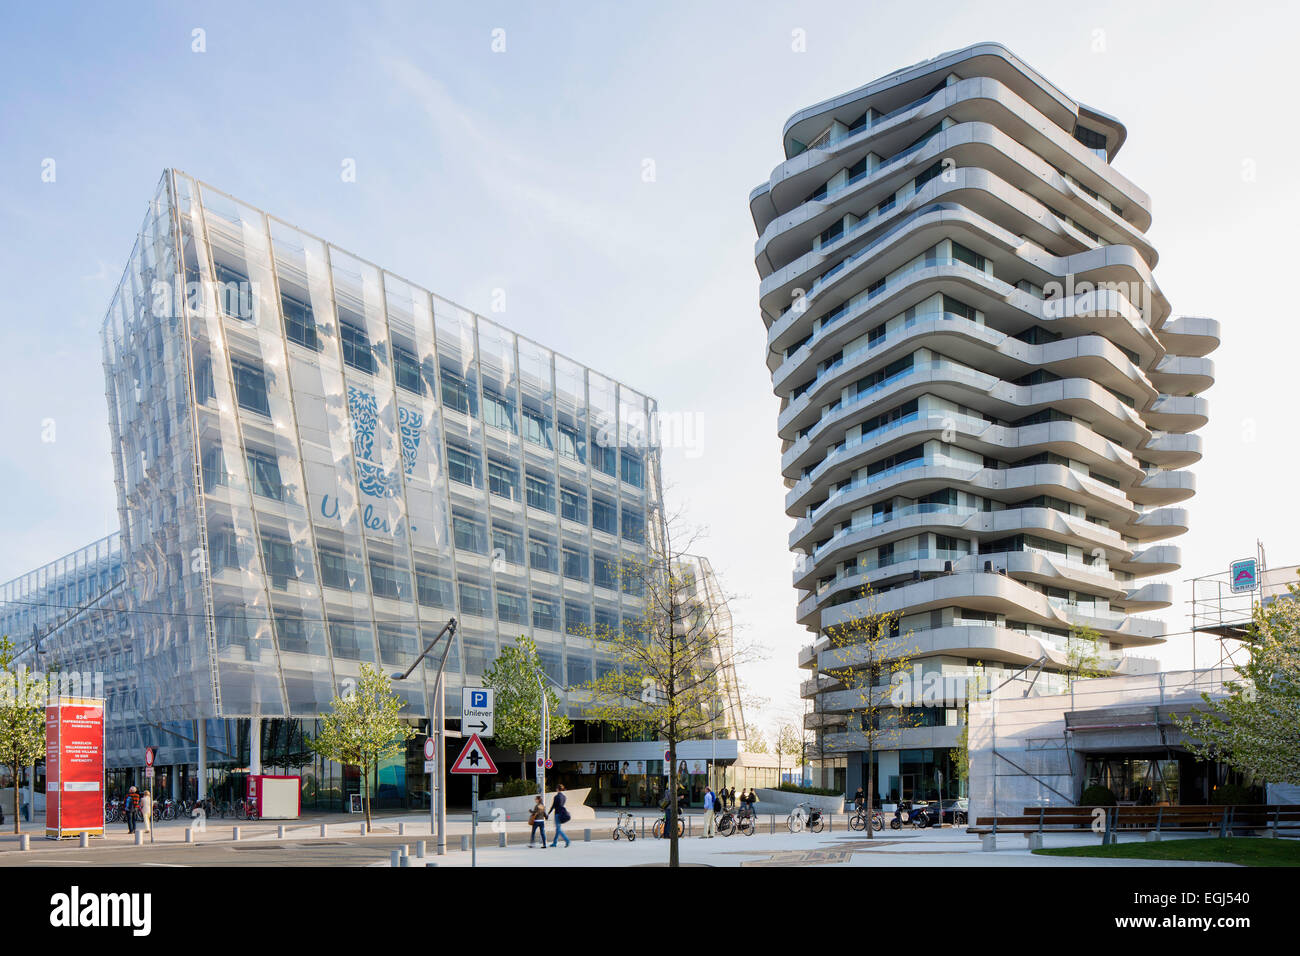 unilever haus office building and residential marco polo tower stock photo 79075136 alamy. Black Bedroom Furniture Sets. Home Design Ideas